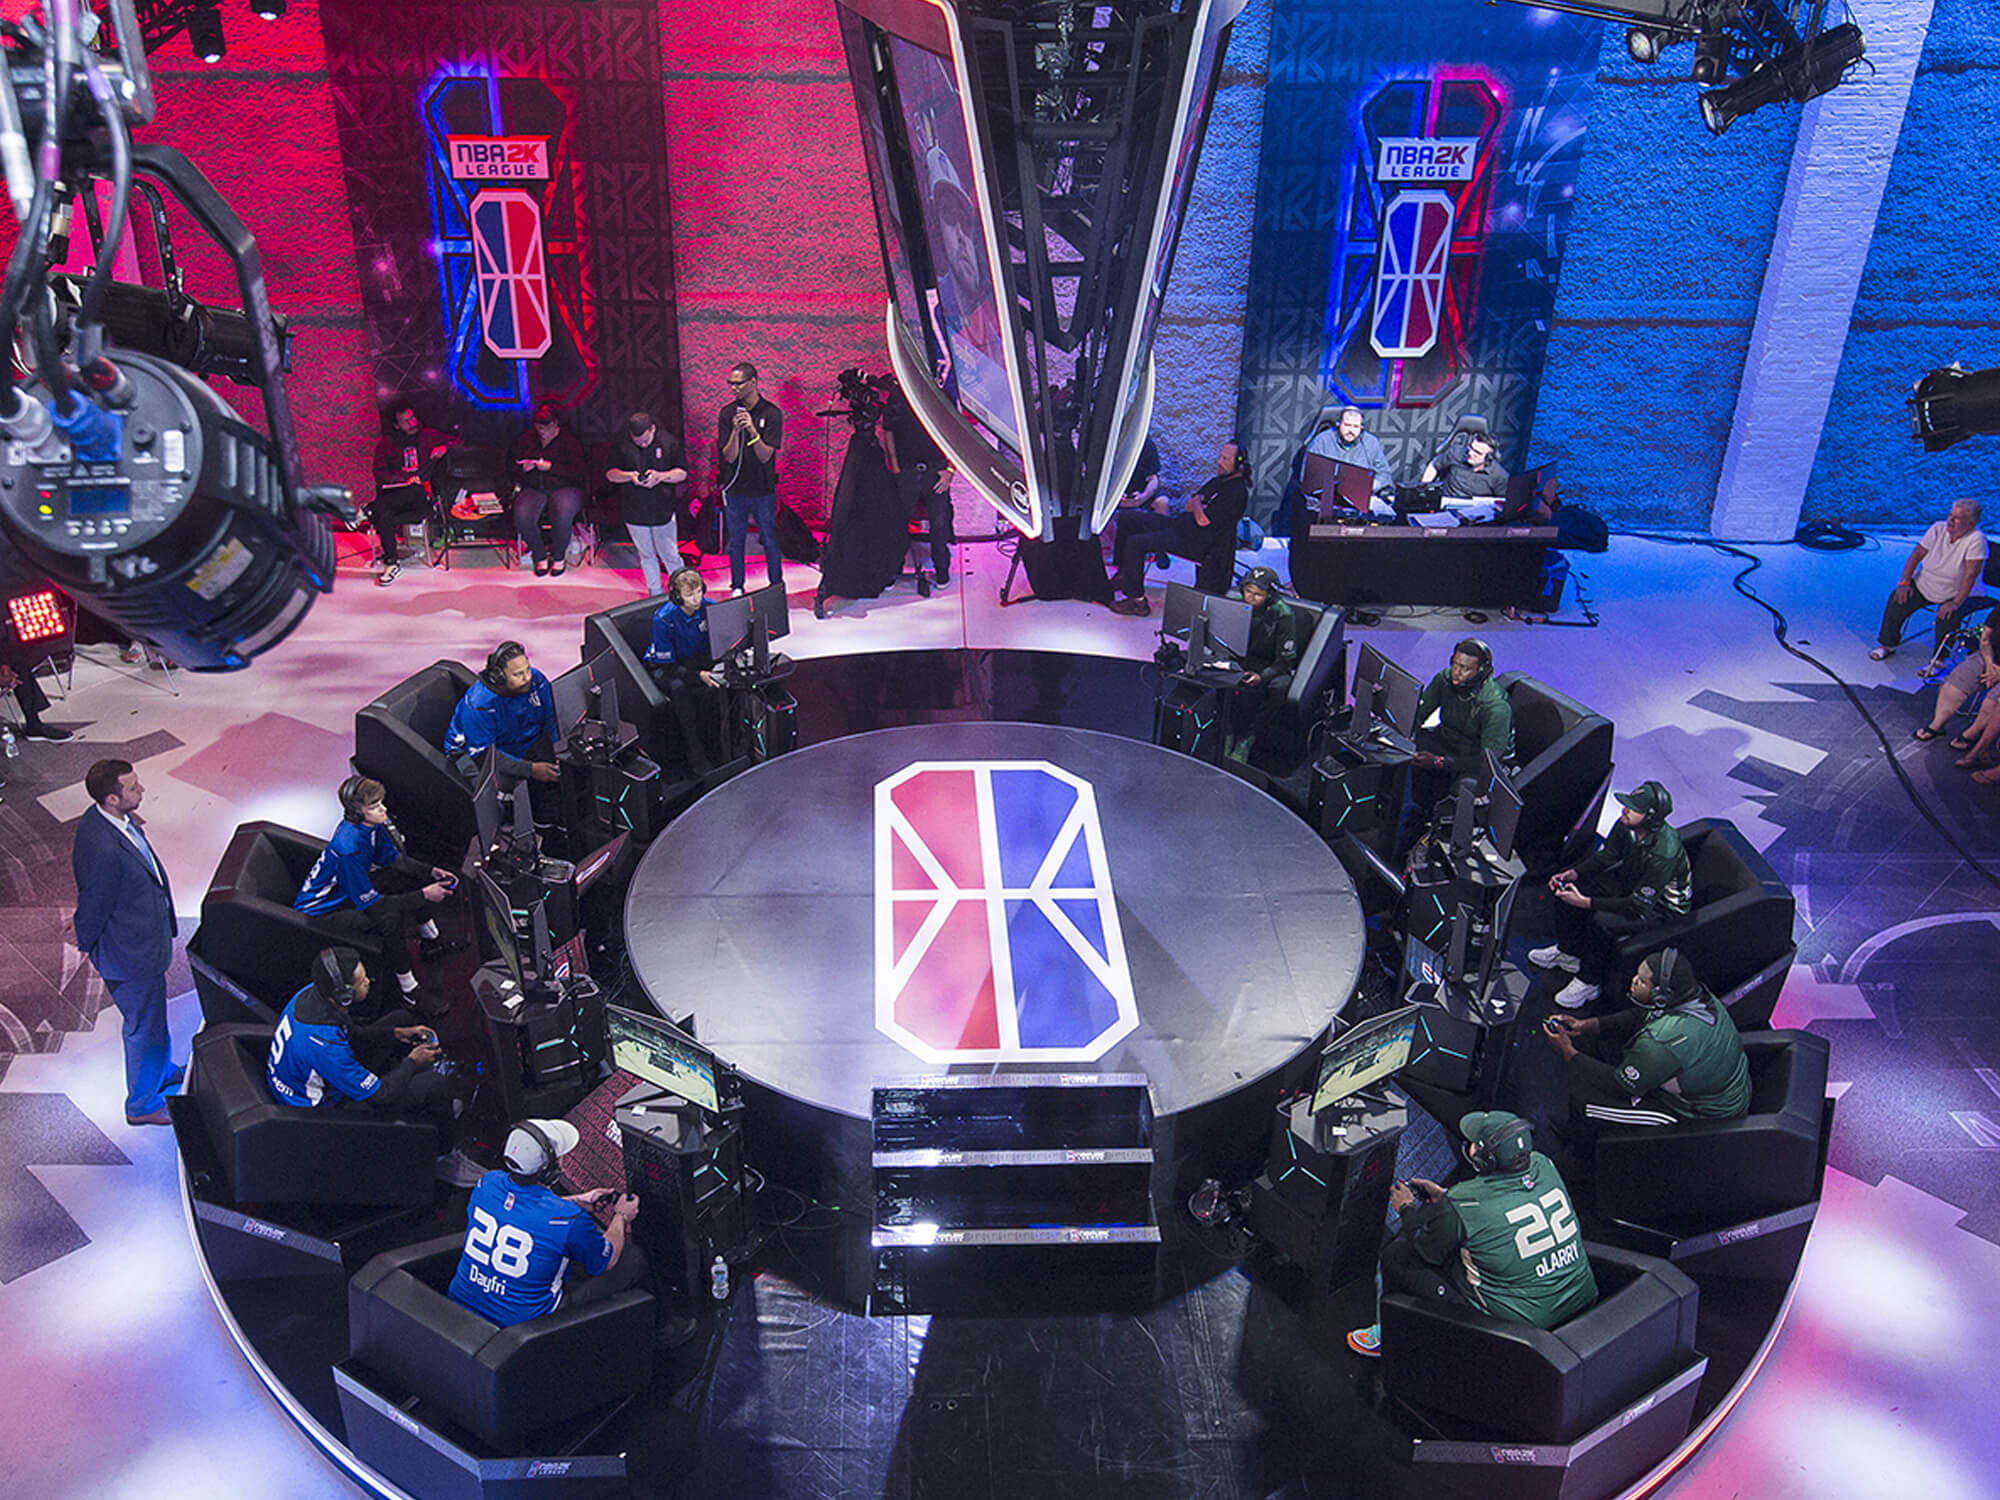 As NBA 2K League's First Season Closes Out, Studio and Production Workflows Continue To Evolve - Sports Video Group